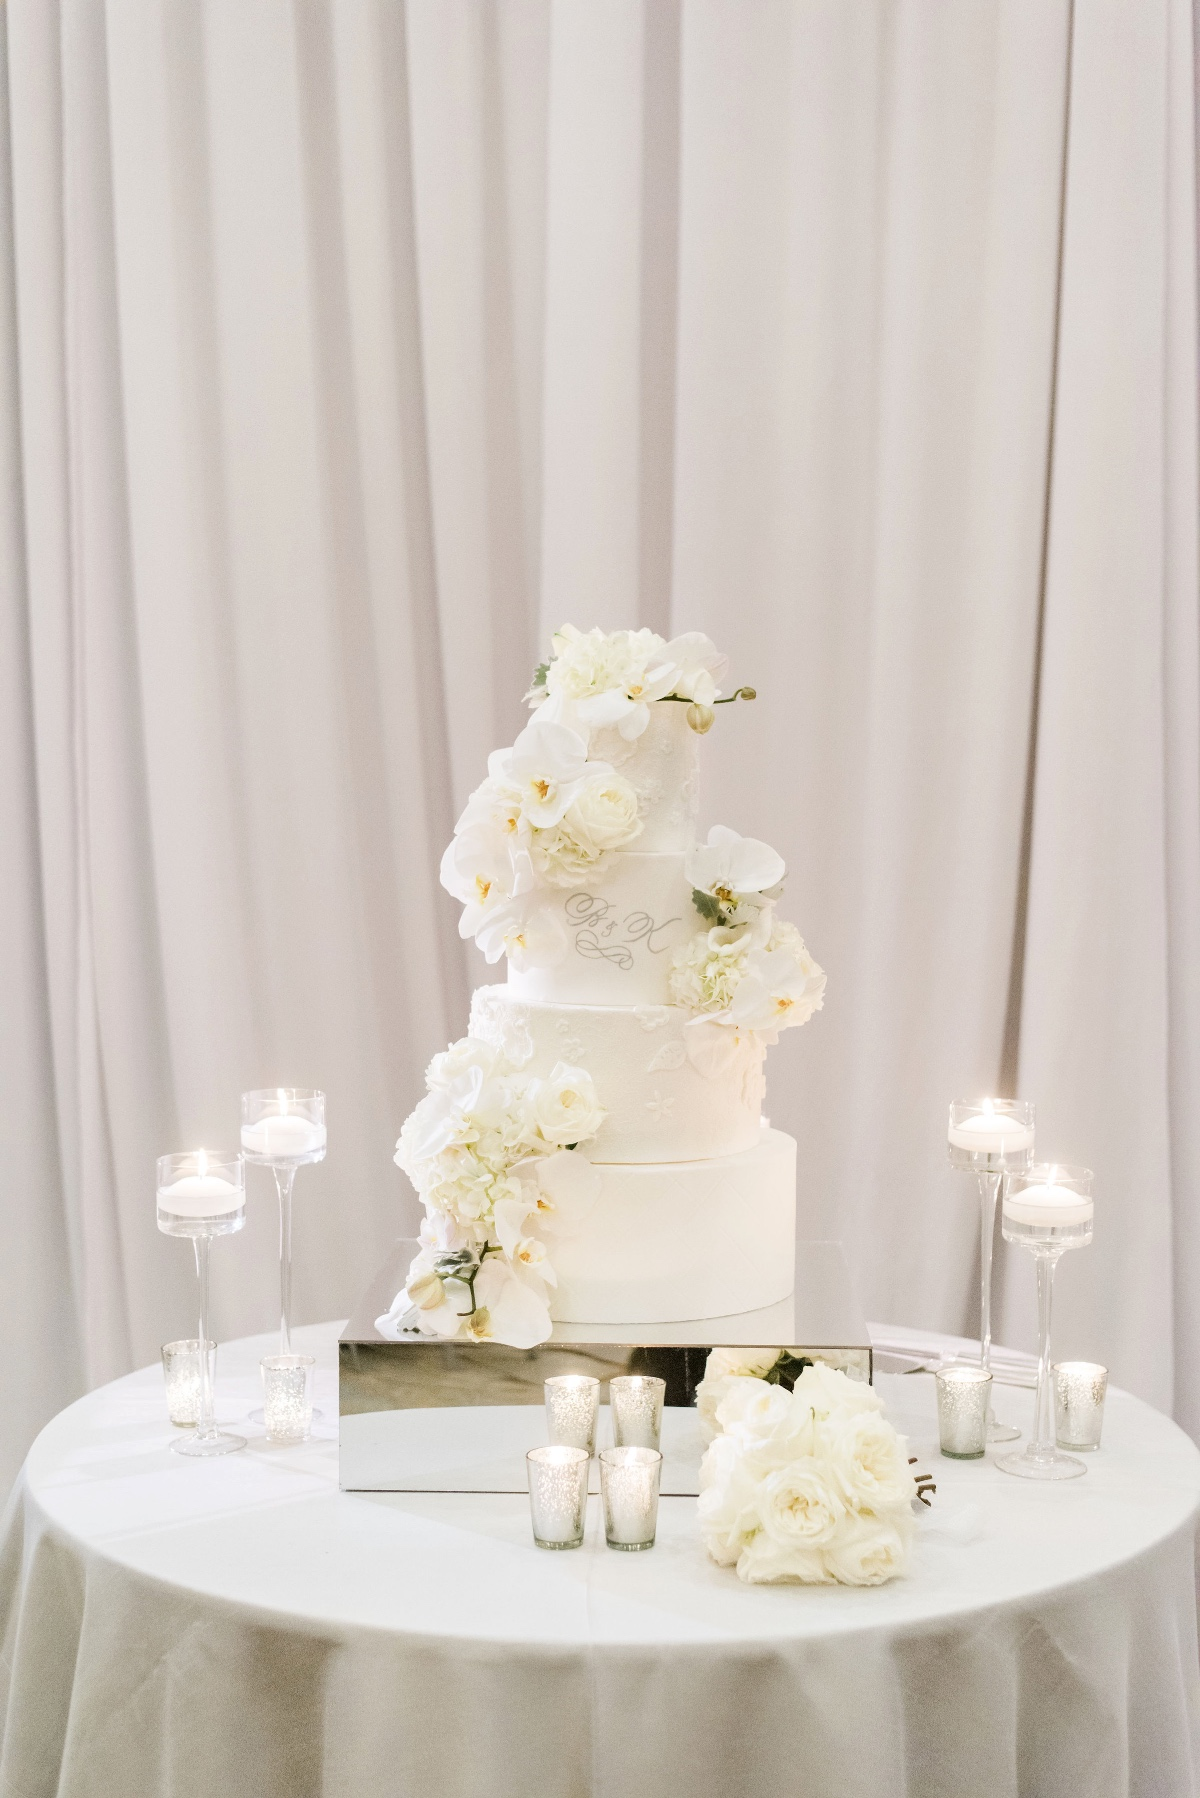 White four tier wedding cake